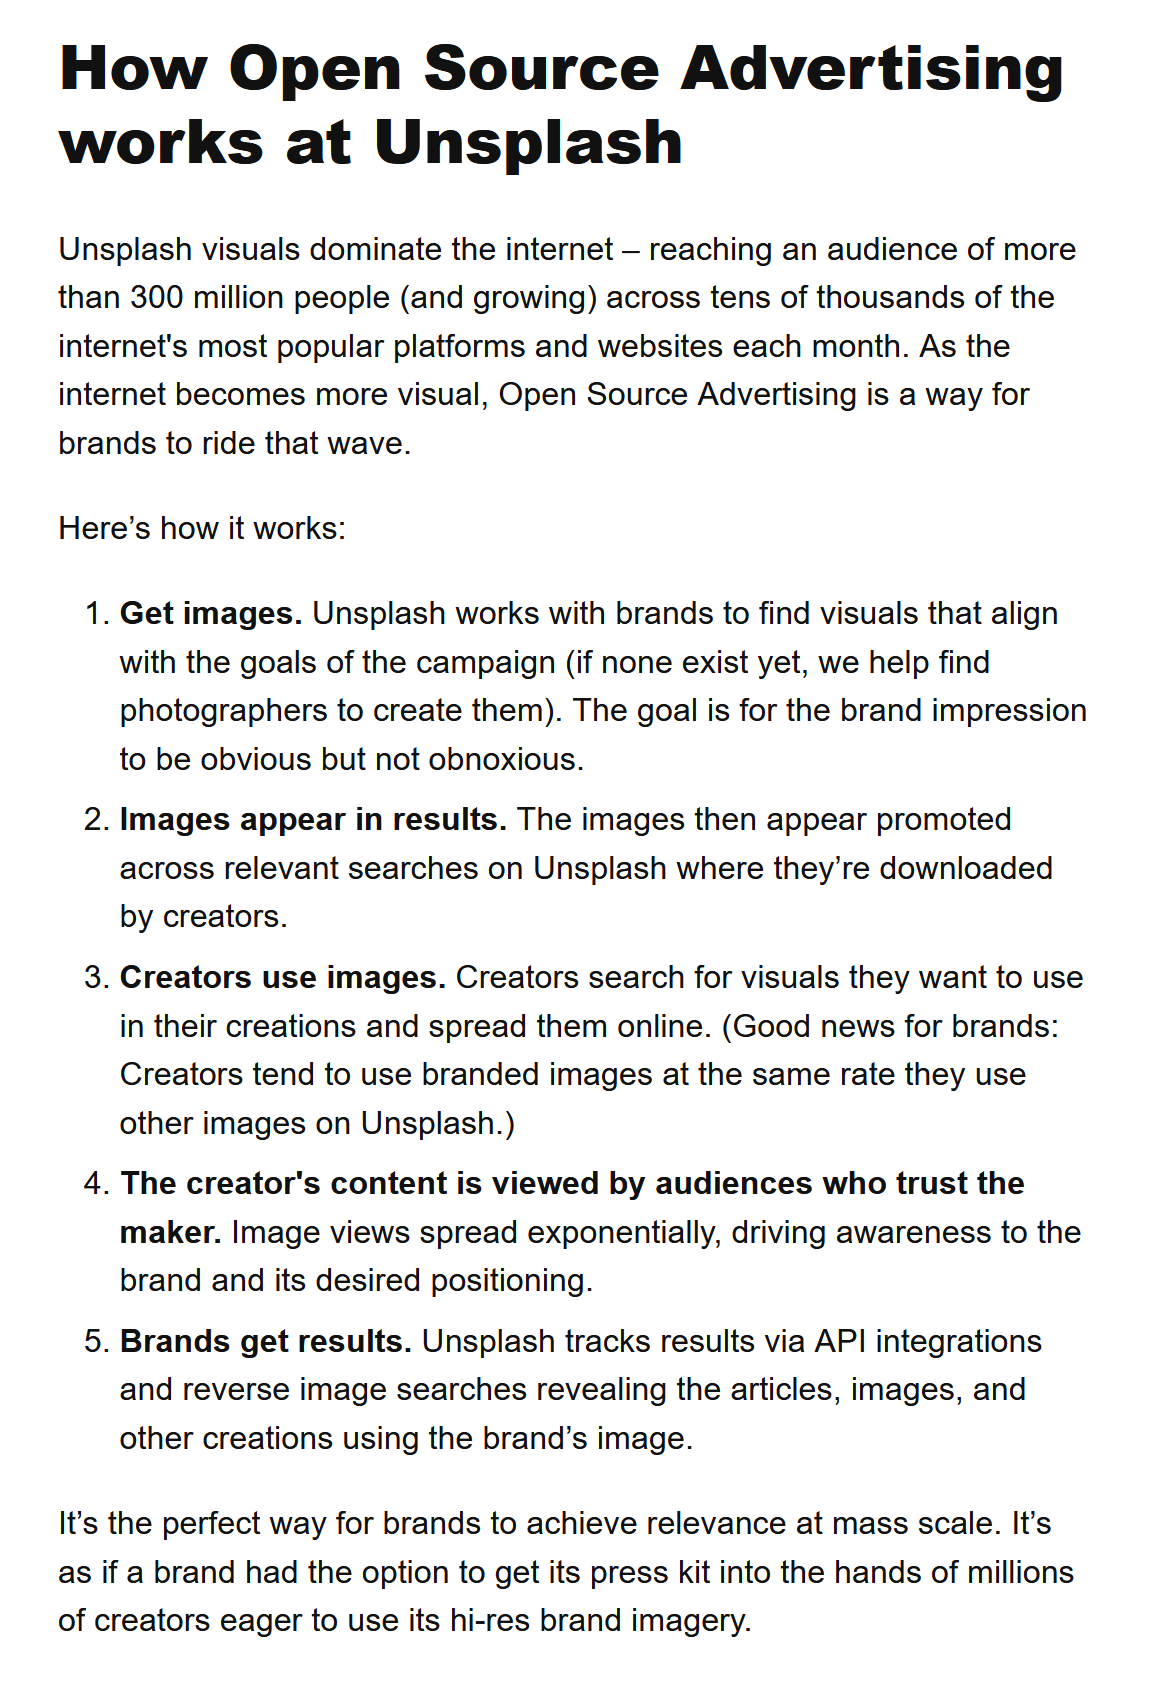 """Screenshot mit Text: """"How Open Source Advertising works at Unsplash  Unsplash visuals dominate the internet – reaching an audience of more than 300 million people (and growing) across tens of thousands of the internet's most popular platforms and websites each month. As the internet becomes more visual, Open Source Advertising is a way for brands to ride that wave.  Here's how it works:  Get images. Unsplash works with brands to find visuals that align with the goals of the campaign (if none exist yet, we help find photographers to create them). The goal is for the brand impression to be obvious but not obnoxious. Images appear in results. The images then appear promoted across relevant searches on Unsplash where they're downloaded by creators. Creators use images. Creators search for visuals they want to use in their creations and spread them online. (Good news for brands: Creators tend to use branded images at the same rate they use other images on Unsplash.) The creator's content is viewed by audiences who trust the maker. Image views spread exponentially, driving awareness to the brand and its desired positioning. Brands get results. Unsplash tracks results via API integrations and reverse image searches revealing the articles, images, and other creations using the brand's image. It's the perfect way for brands to achieve relevance at mass scale. It's as if a brand had the option to get its press kit into the hands of millions of creators eager to use its hi-res brand imagery."""""""